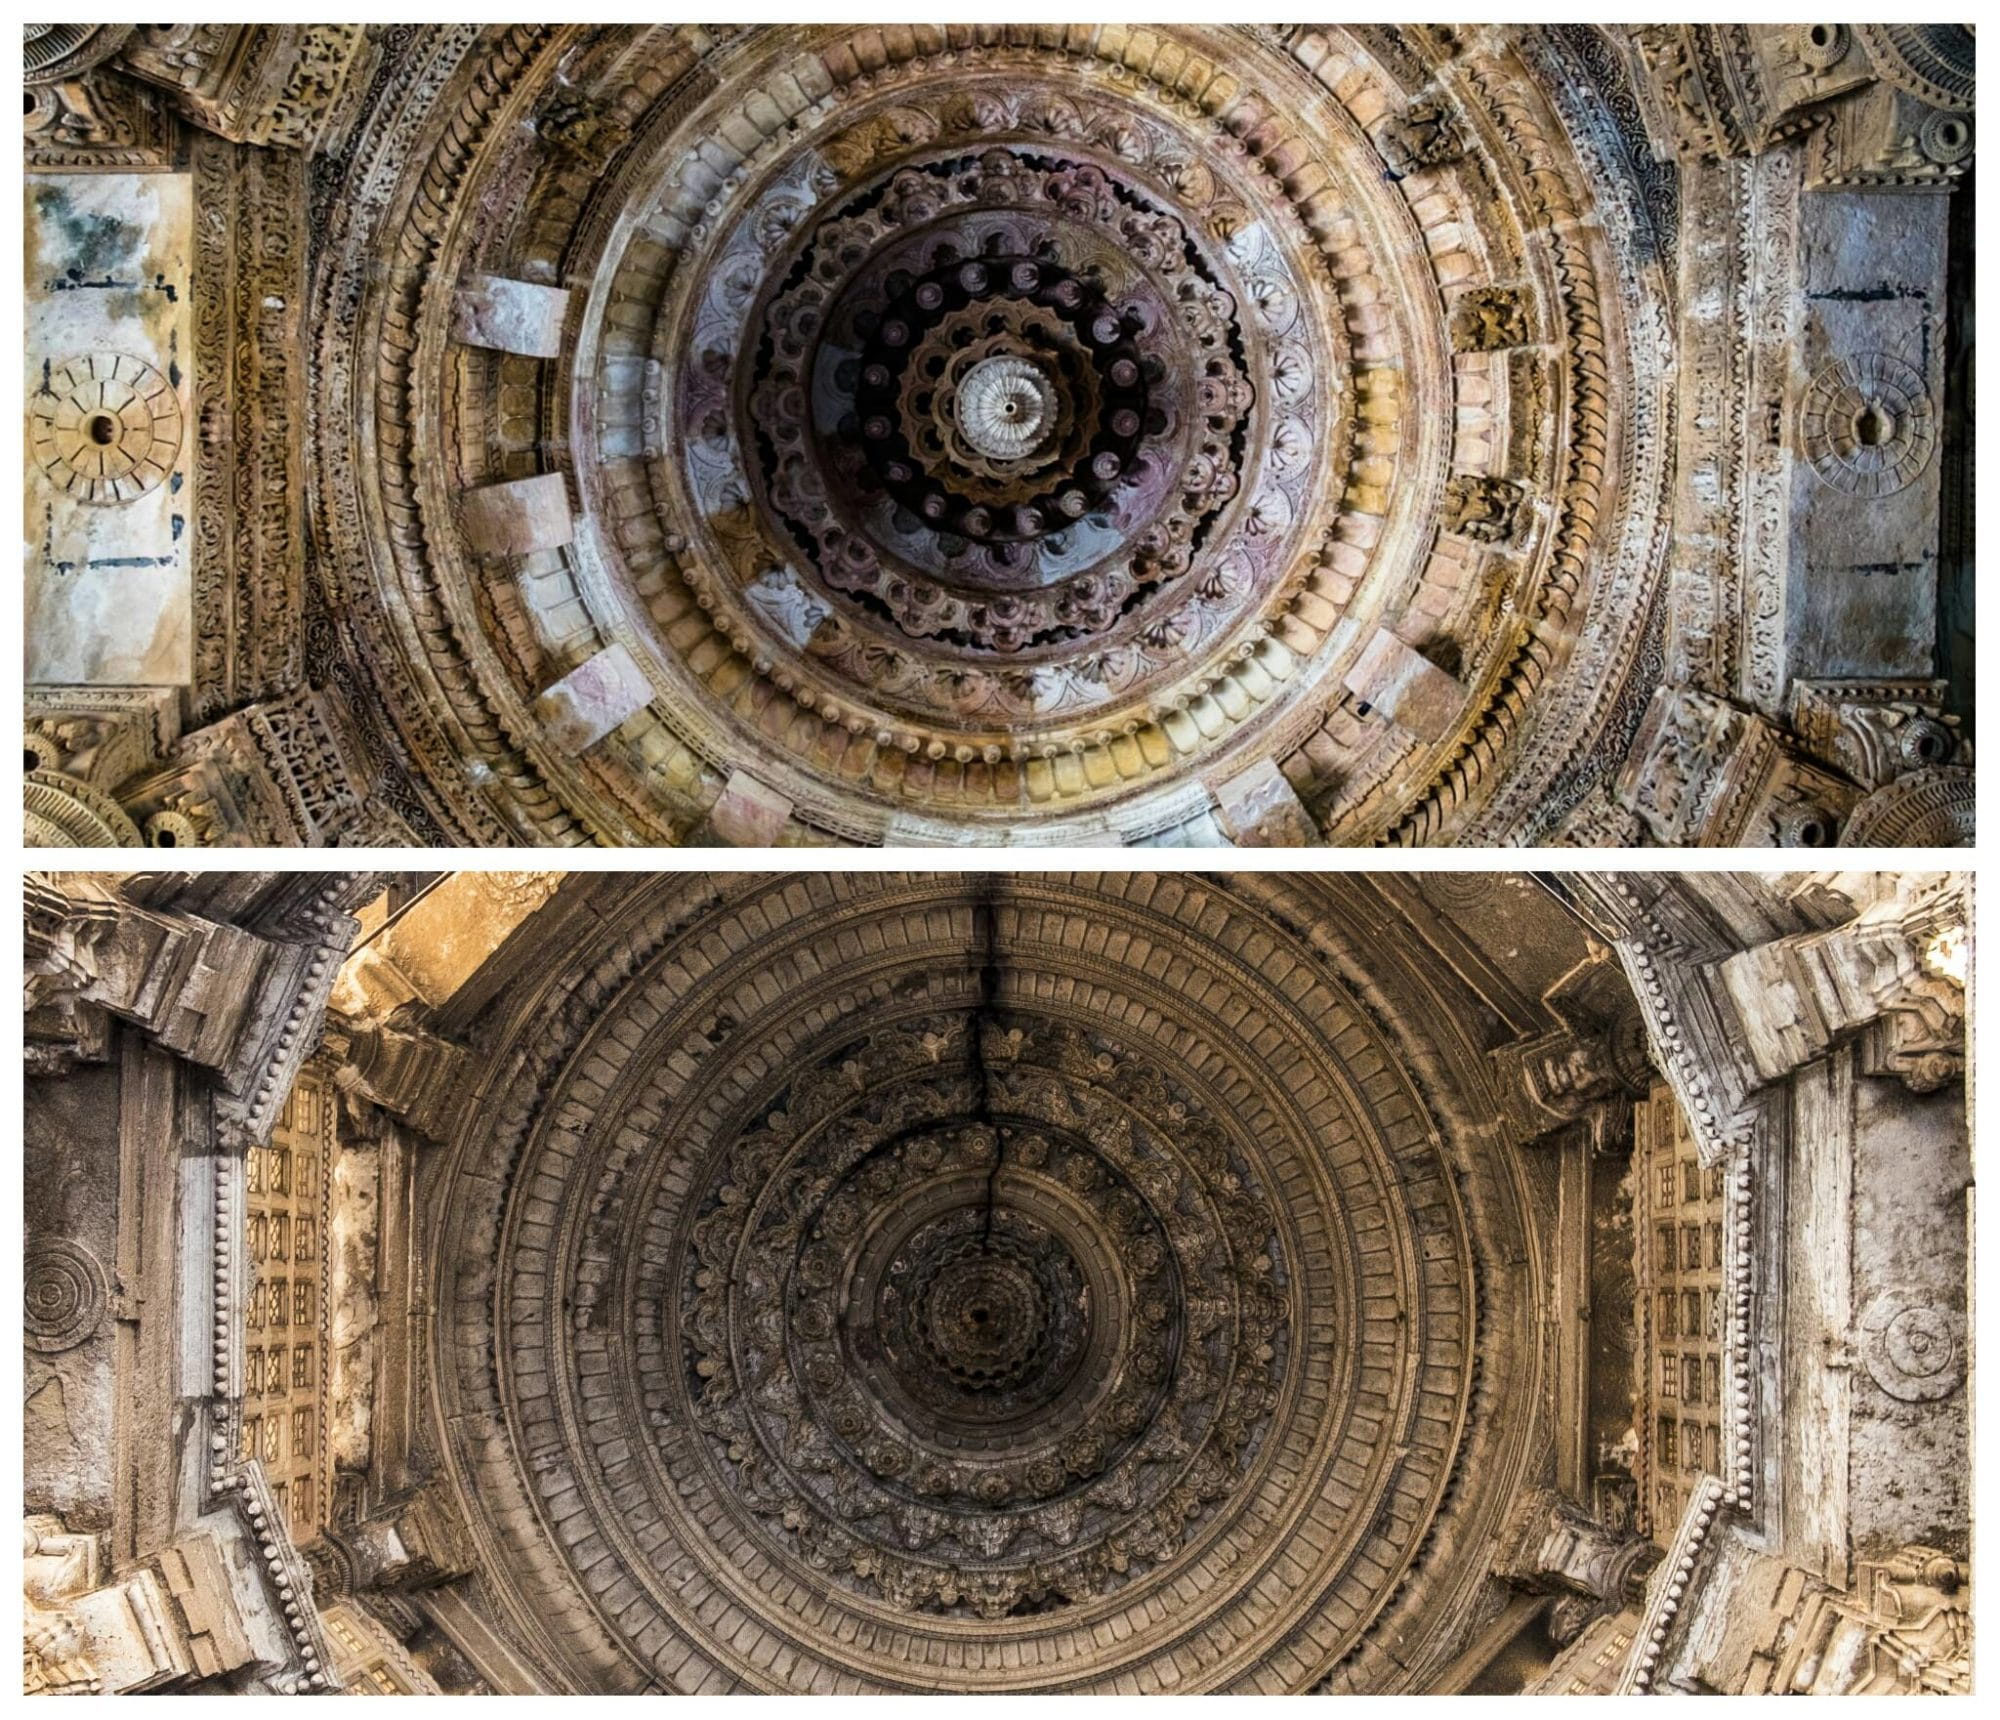 Roof of the Modhera Temple and Jama Masjid, Ahmedabad